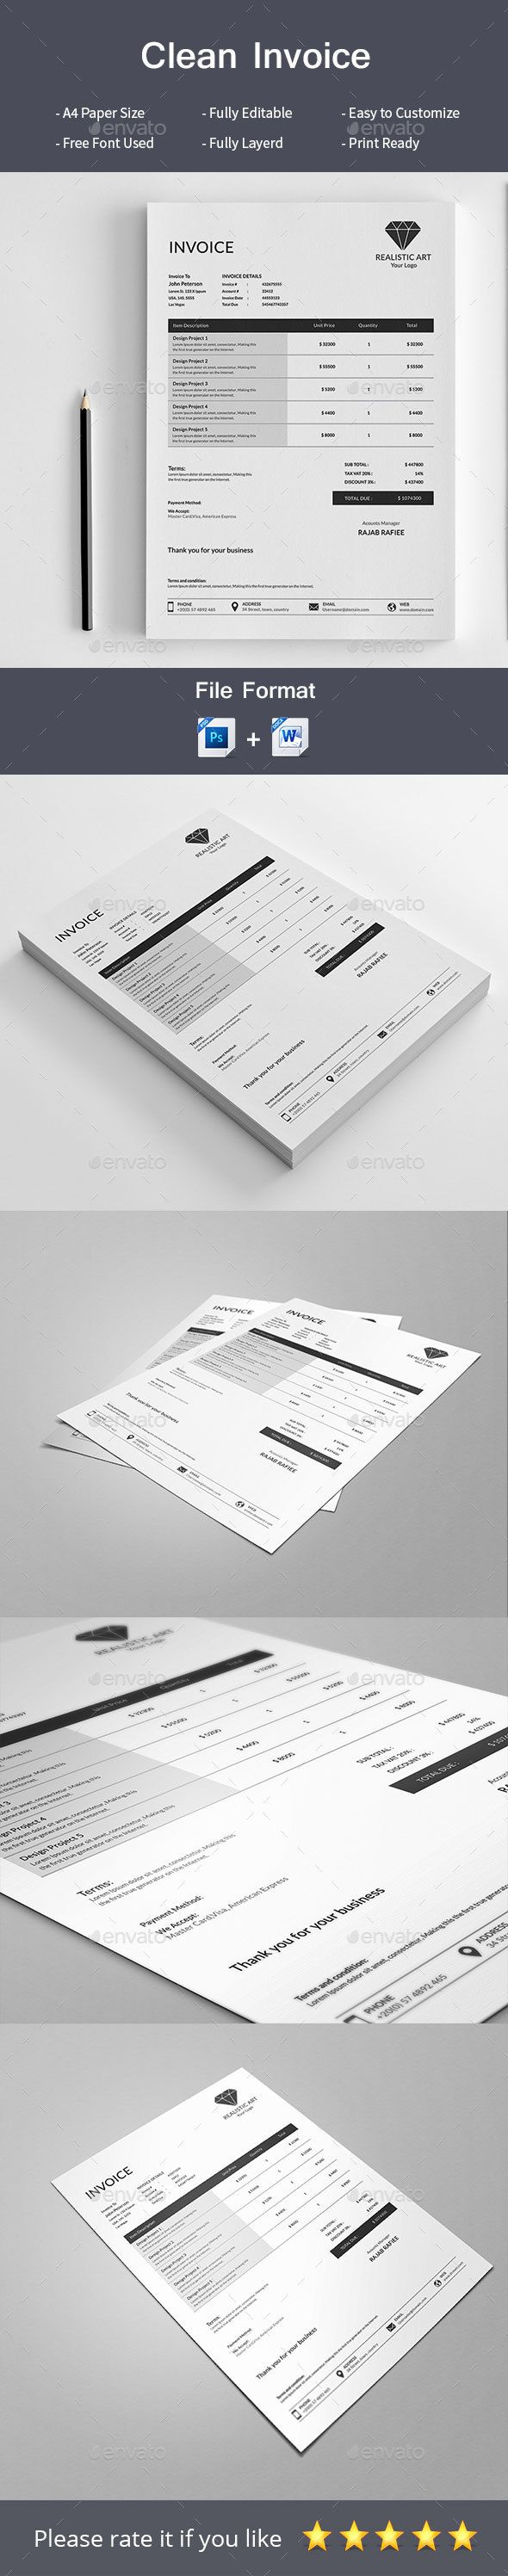 What Can I Claim On Taxes Without Receipts Pdf Best  Bill Template Ideas On Pinterest  Budget Spreadsheet  Microsoft Word Invoice Template 2003 Word with Apps For Invoices Pdf Clean Invoice  Photoshop Psd Automatic Bill  Download  Https Rent Payment Receipt Template Pdf